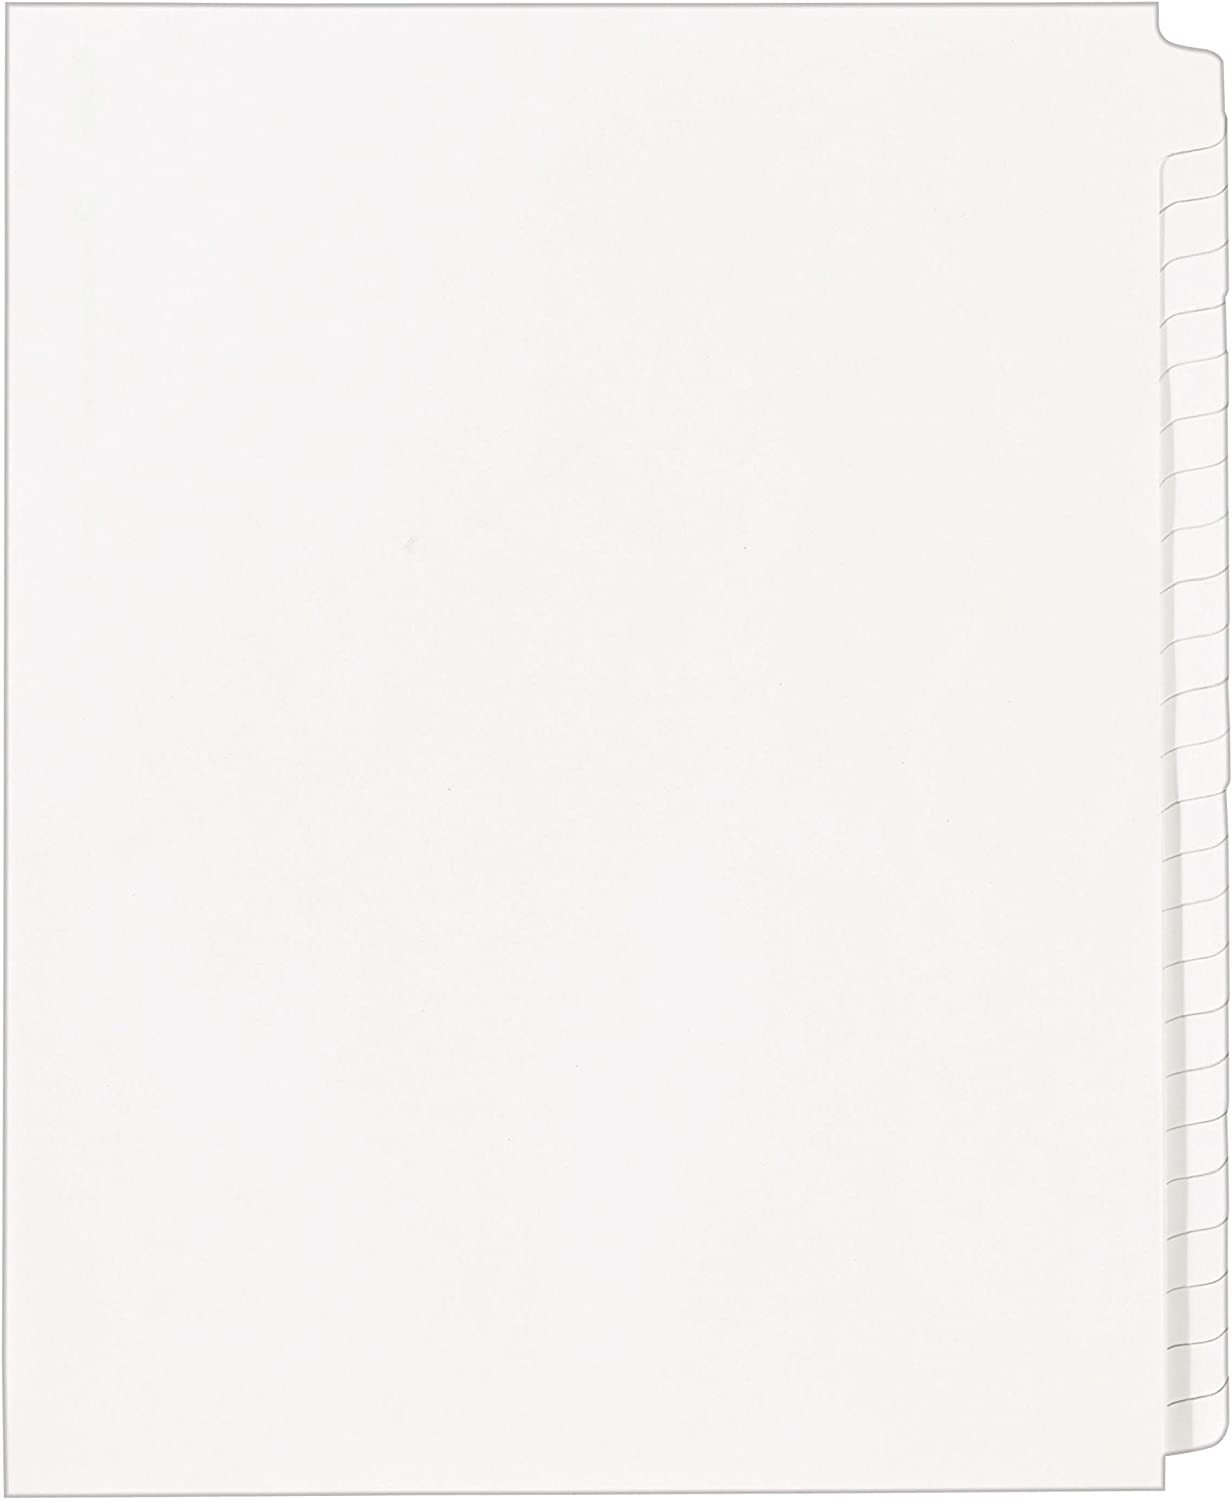 Avery 11959 Blank Tab Legal Exhibit Index Divider Set, 25-Tab, Letter, White, Set of 25 : Binder Index Dividers : Office Products